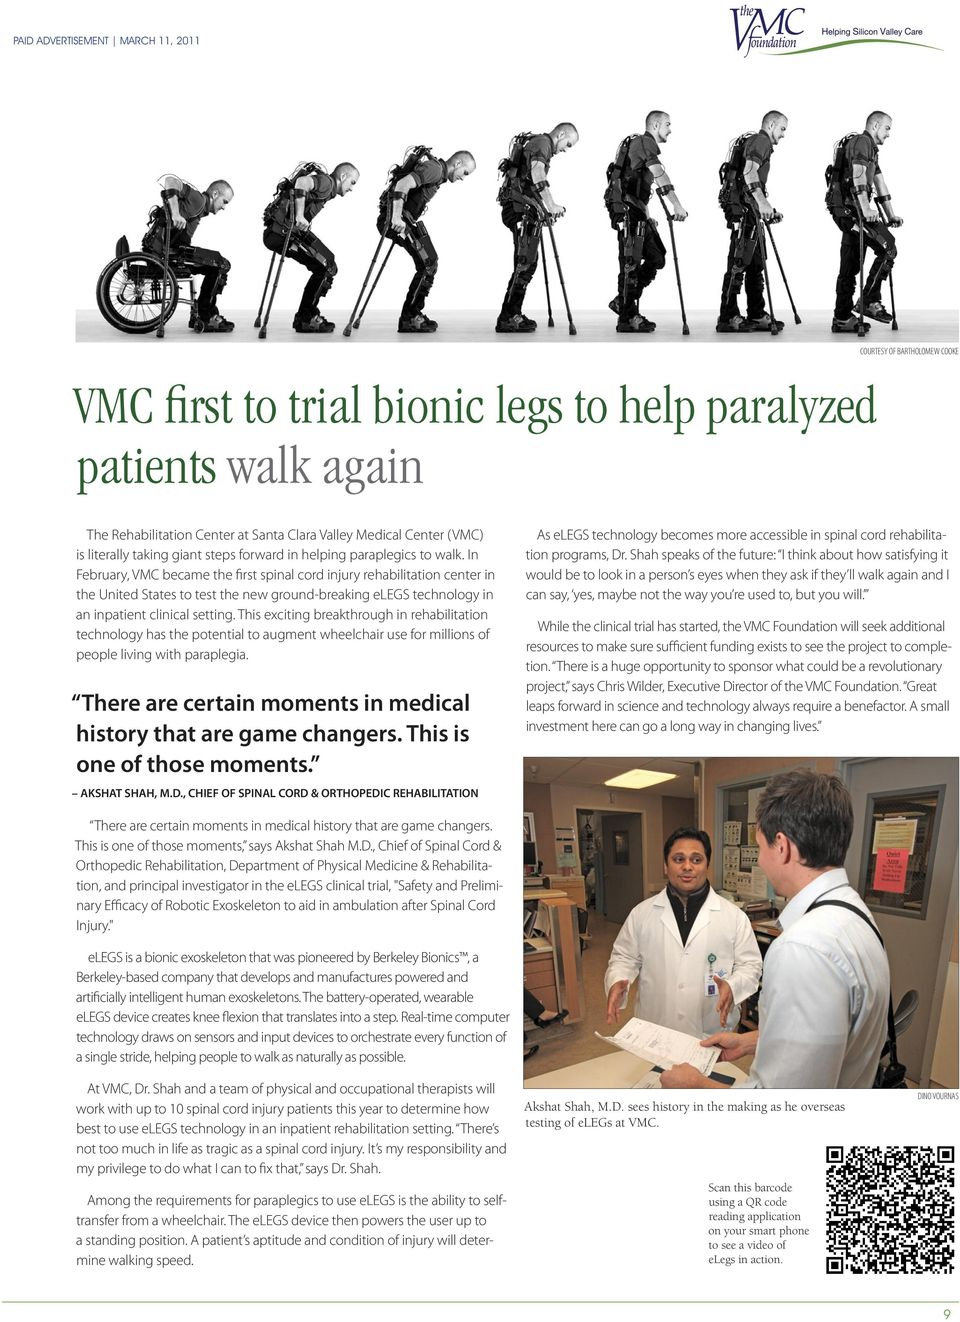 In February, VMC became the first spinal cord injury rehabilitation center in the United States to test the new ground-breaking elegs technology in an inpatient clinical setting.